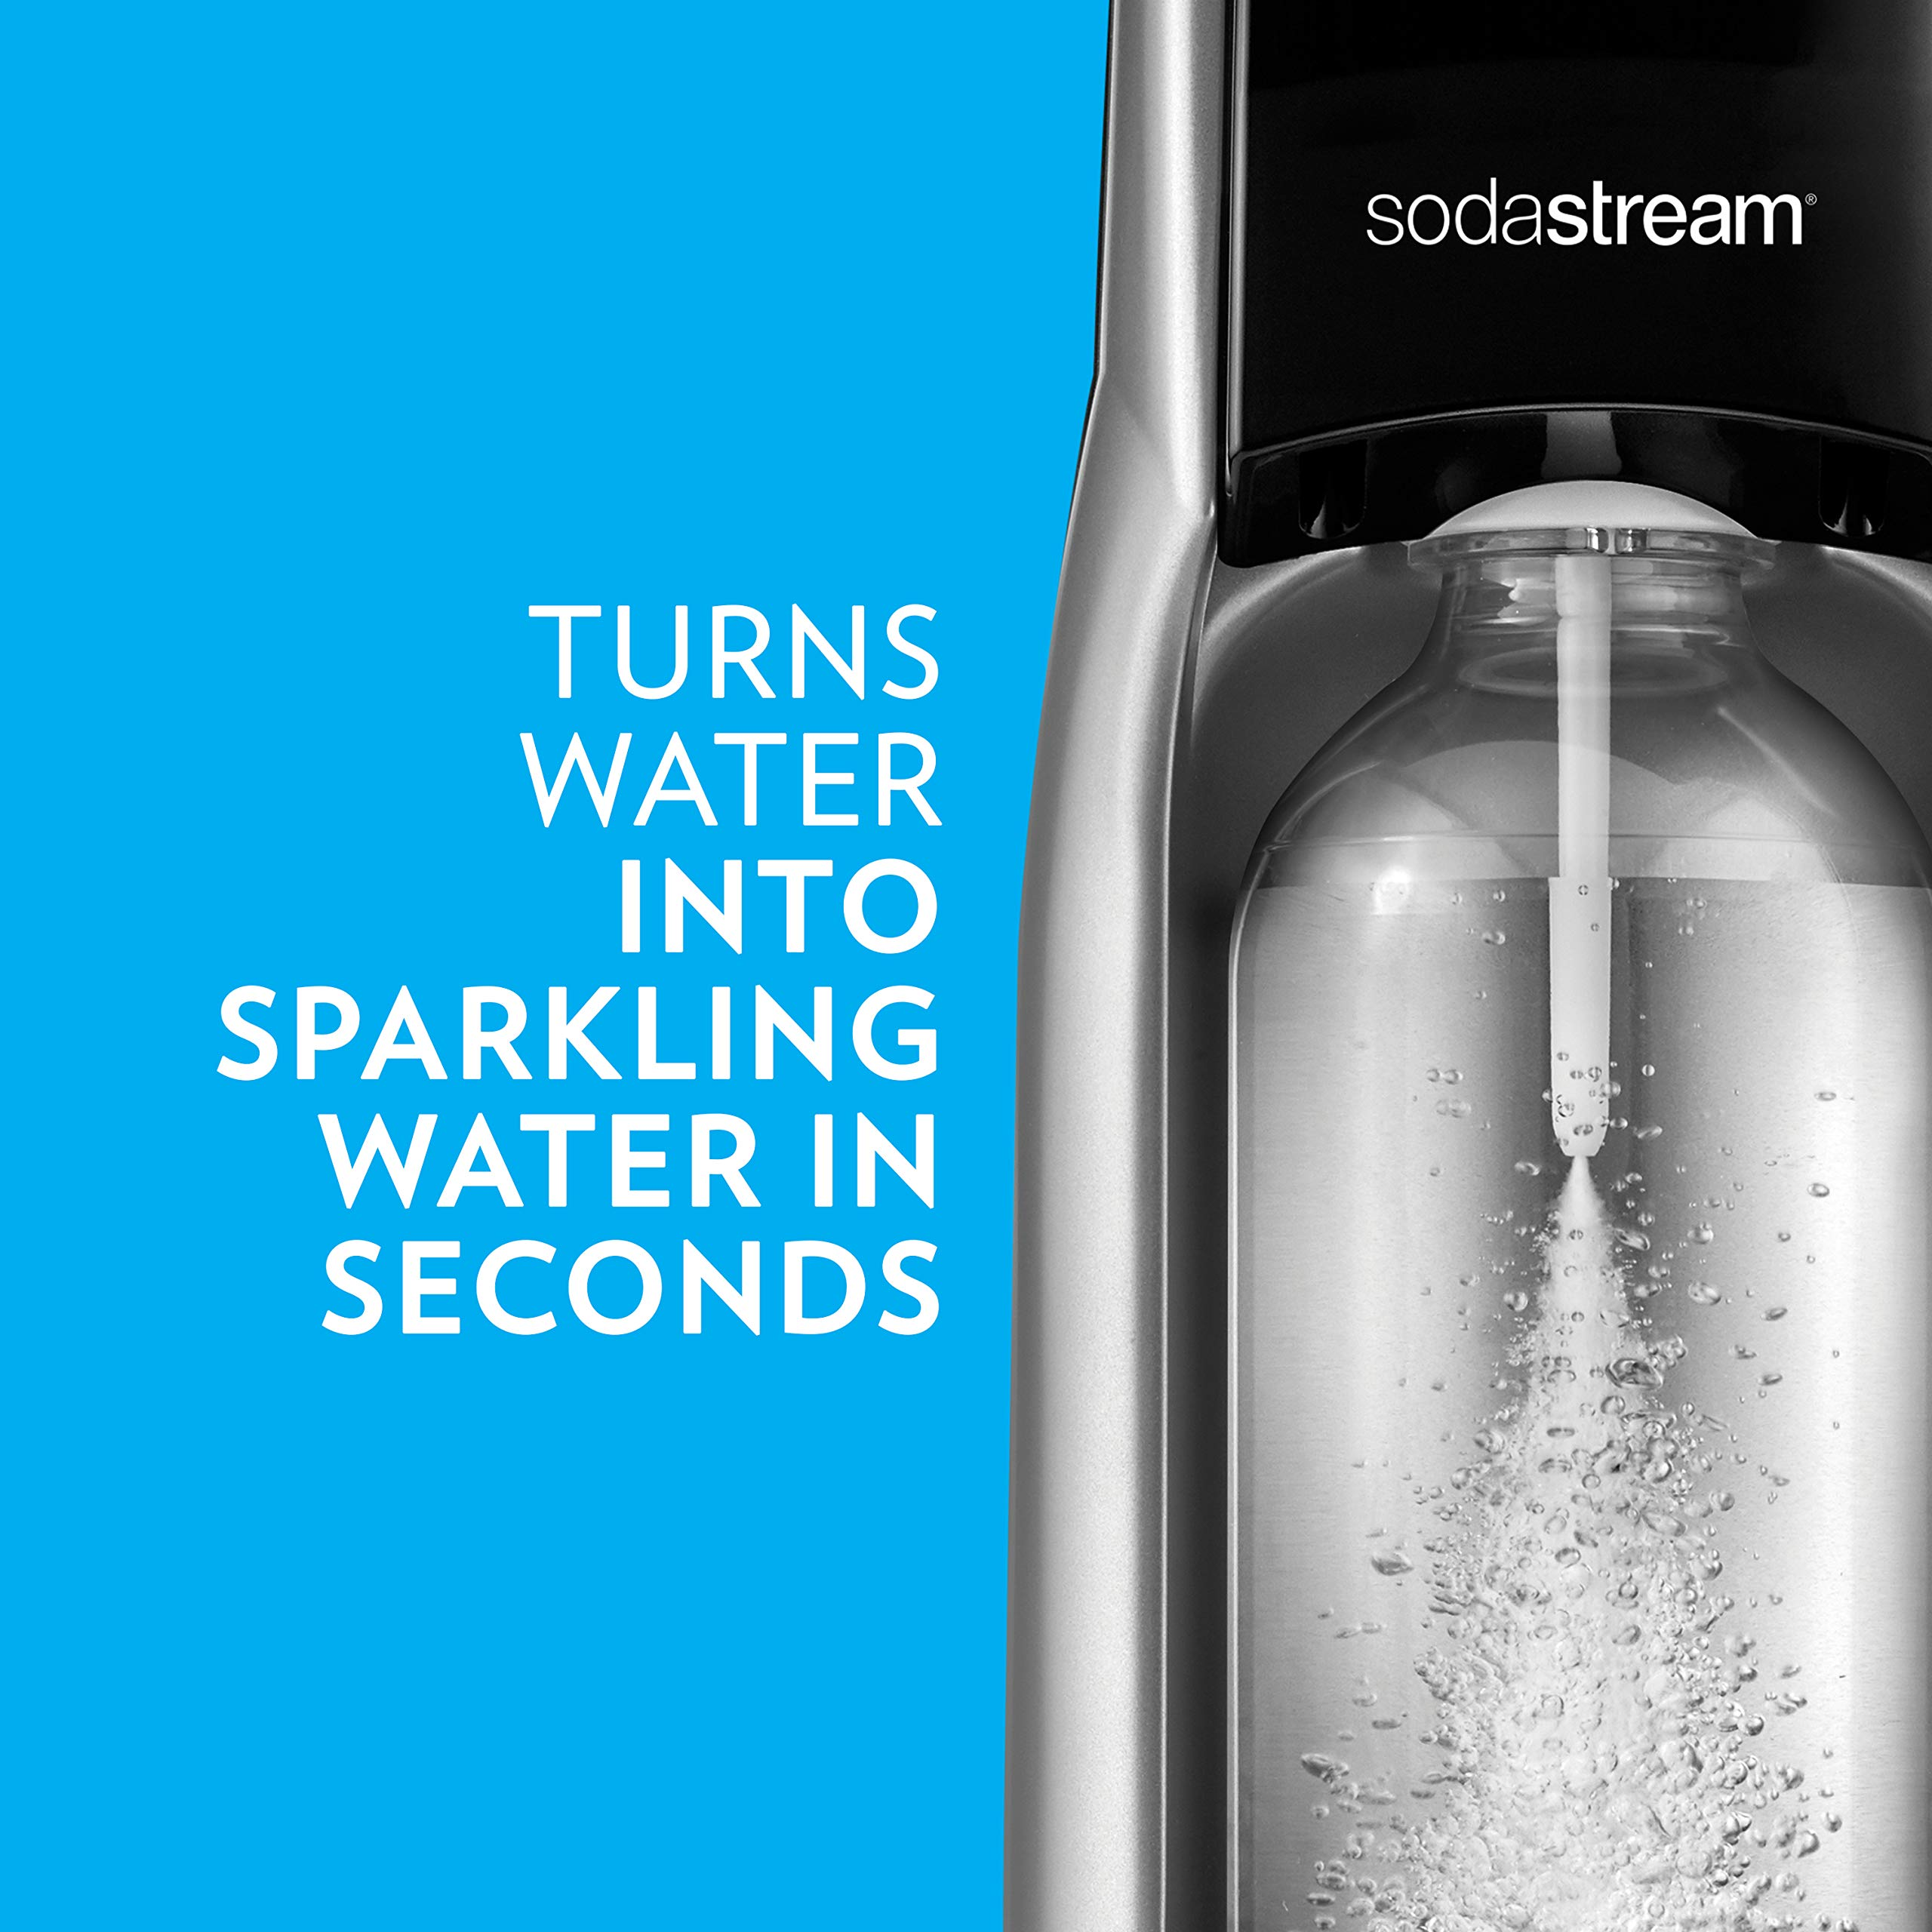 SodaStream Jet Sparkling Water Maker Bundle (Silver) with CO2, BPA free Bottles, and 0 Calorie Fruit Drops Flavors by sodastream (Image #2)